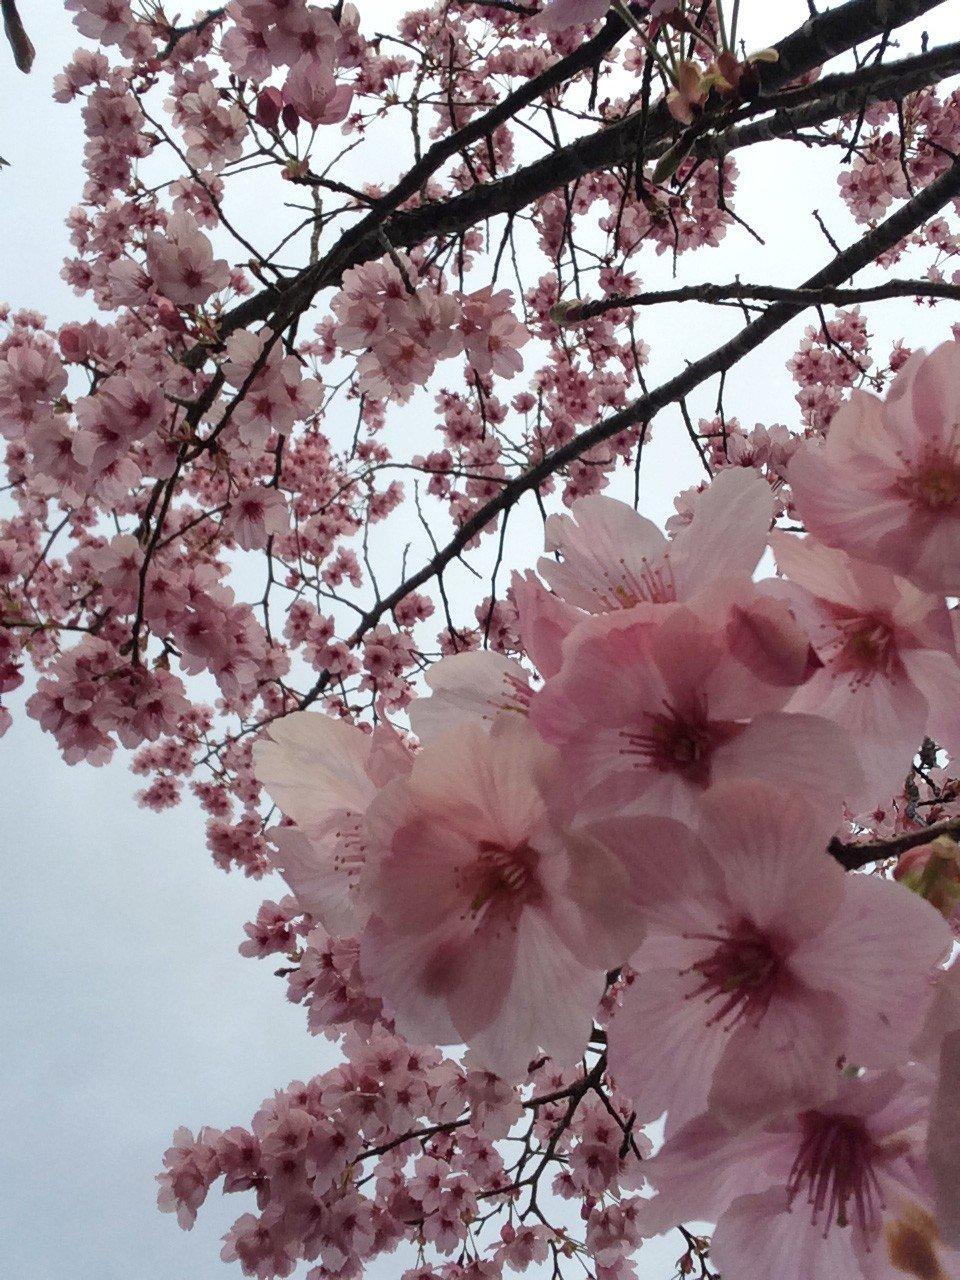 Sakura blossoms can be several shades of pink as well as white.